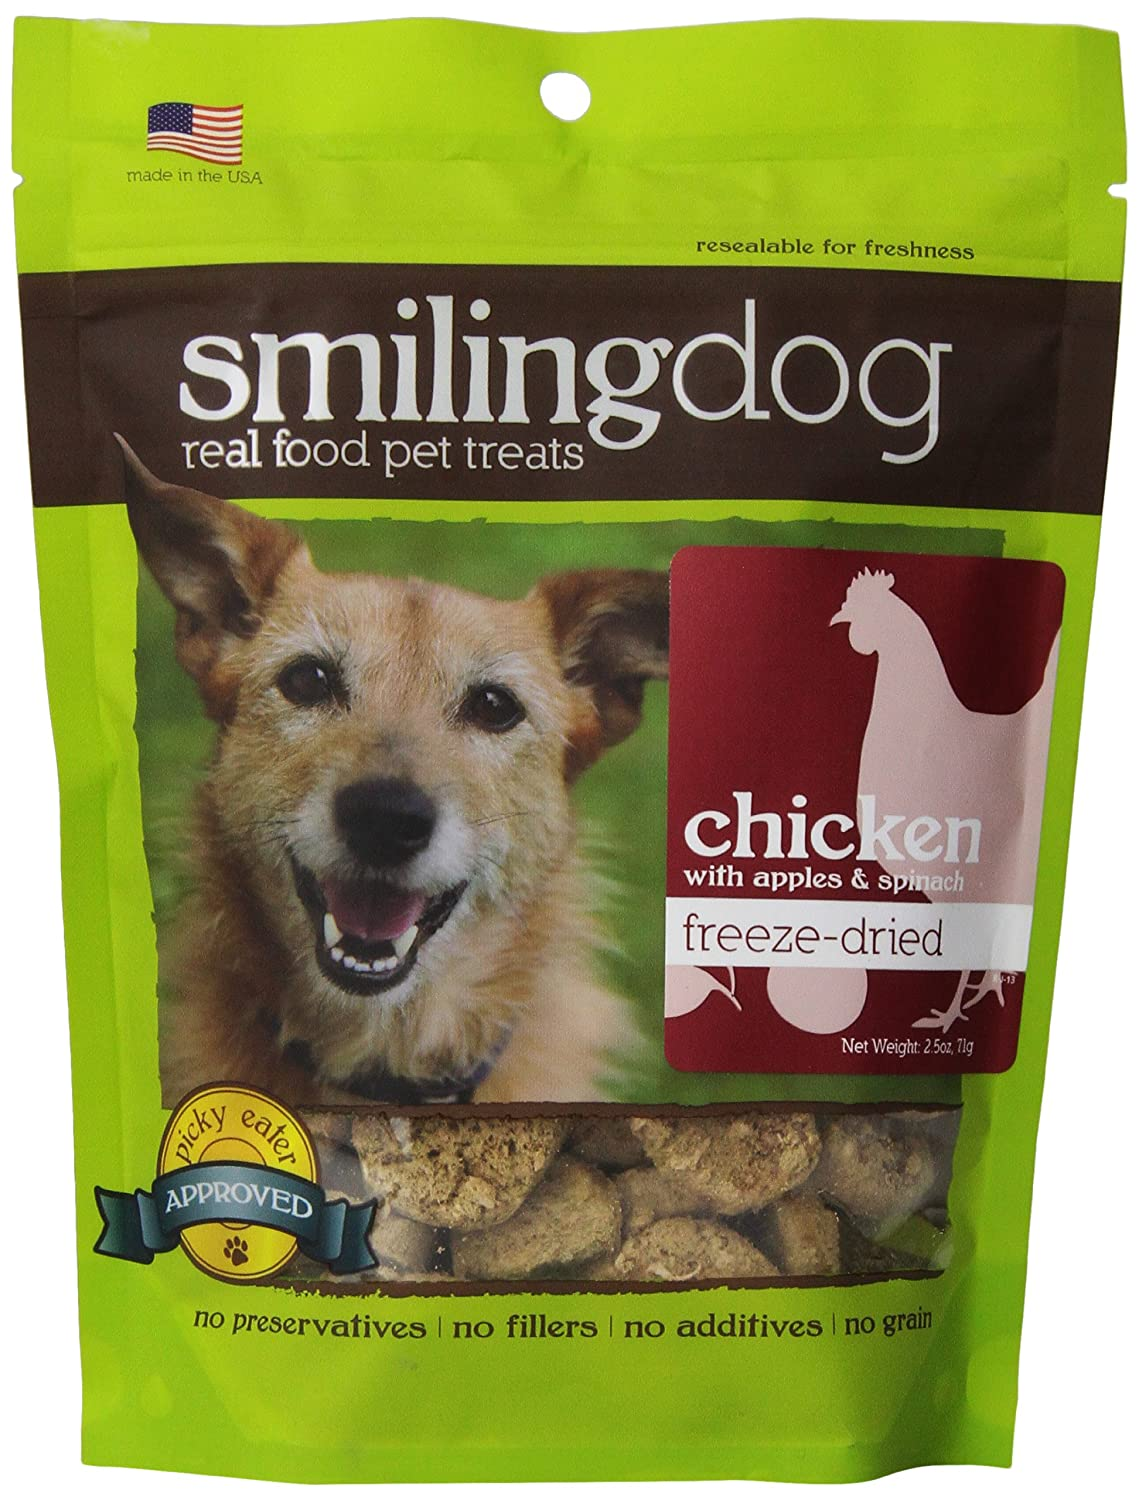 Smiling Dogs And Cats Herbsmith Smiling Dog Freeze Smiling Dog And Cat